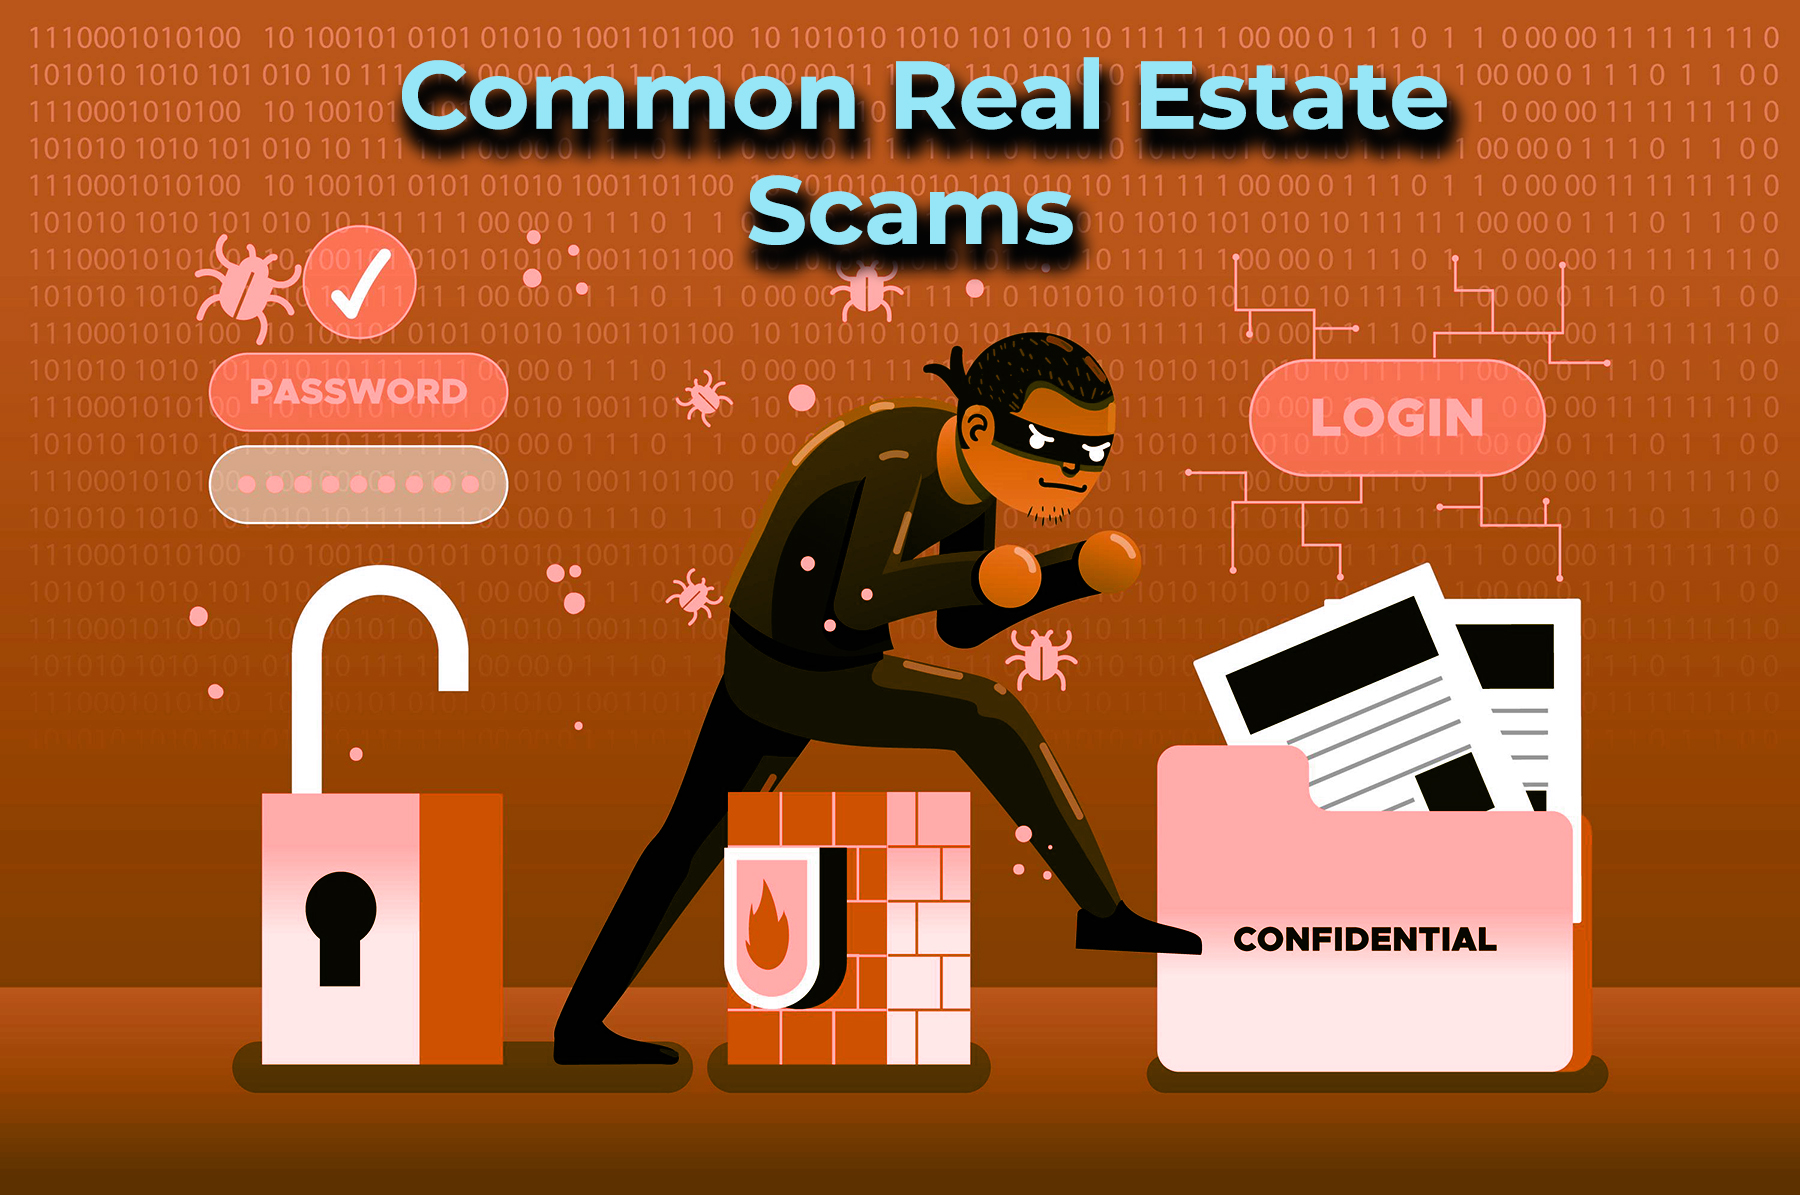 COMMON REAL ESTATE SCAMS